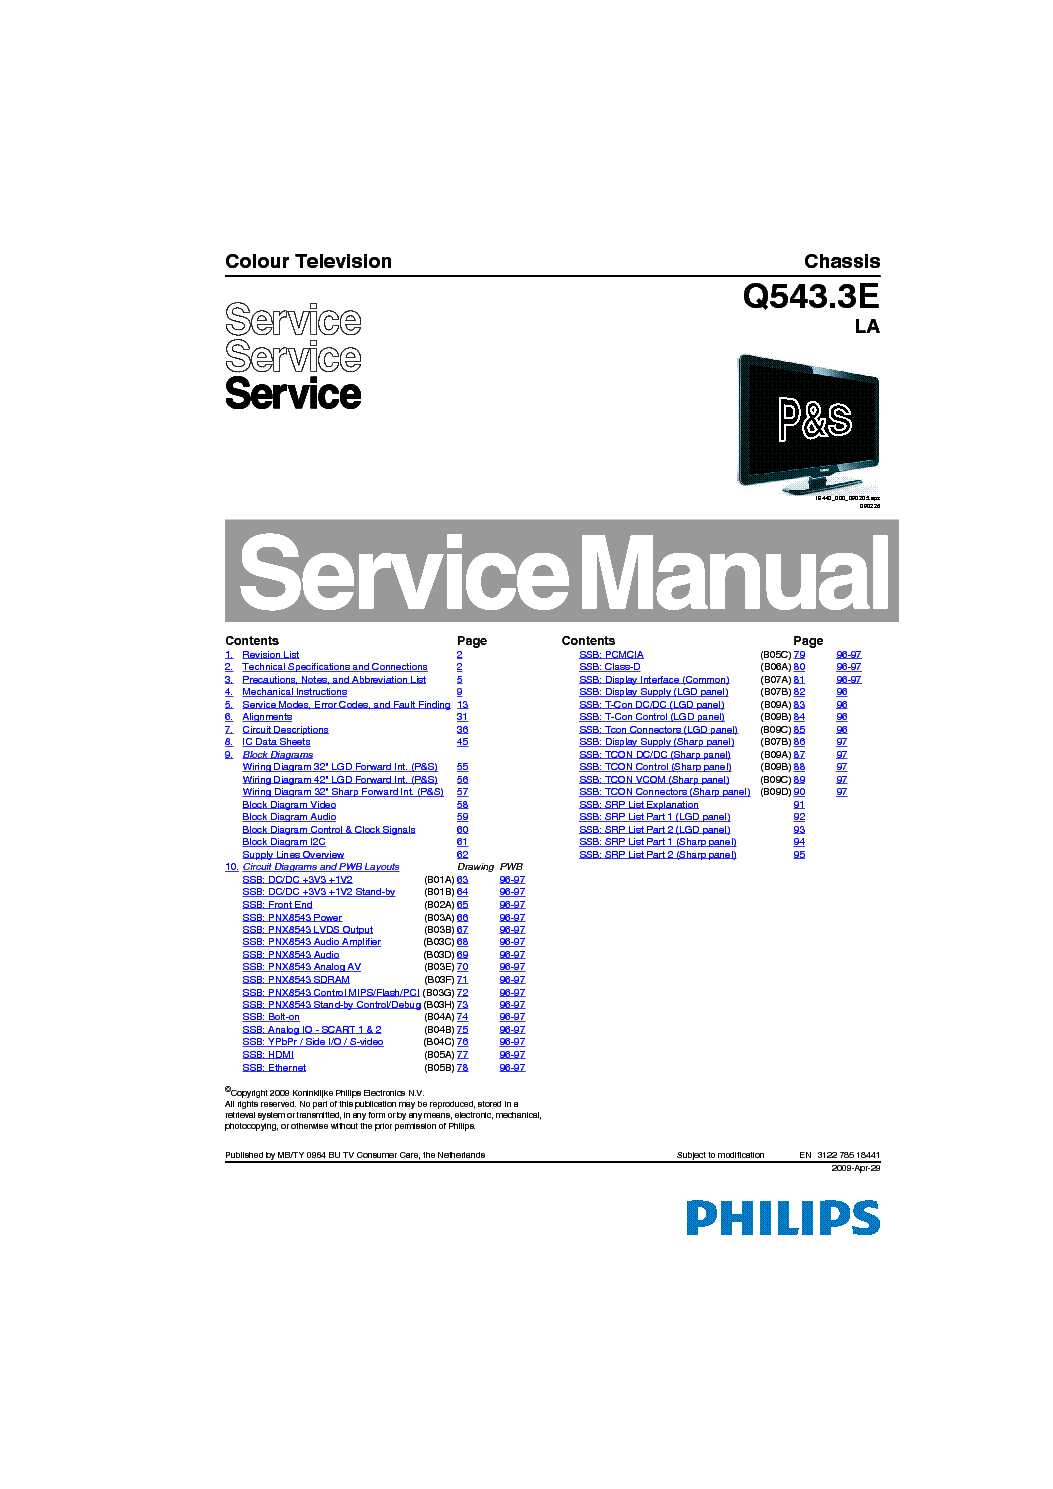 Philips Q5433e La Chassis Lcd Service Manual Download Schematics Phillips Wiring Diagrams 1st Page